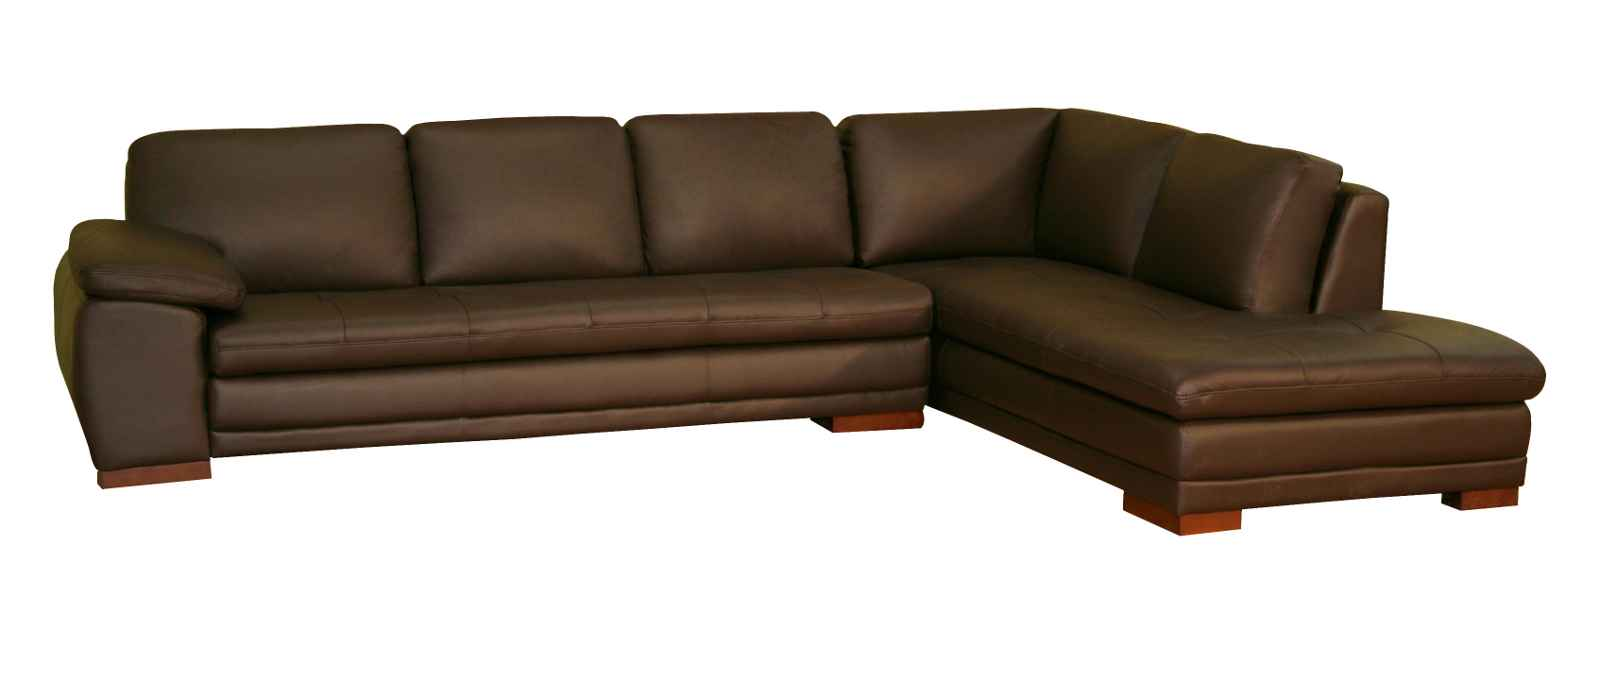 leather sectional sofa brown photo - 6